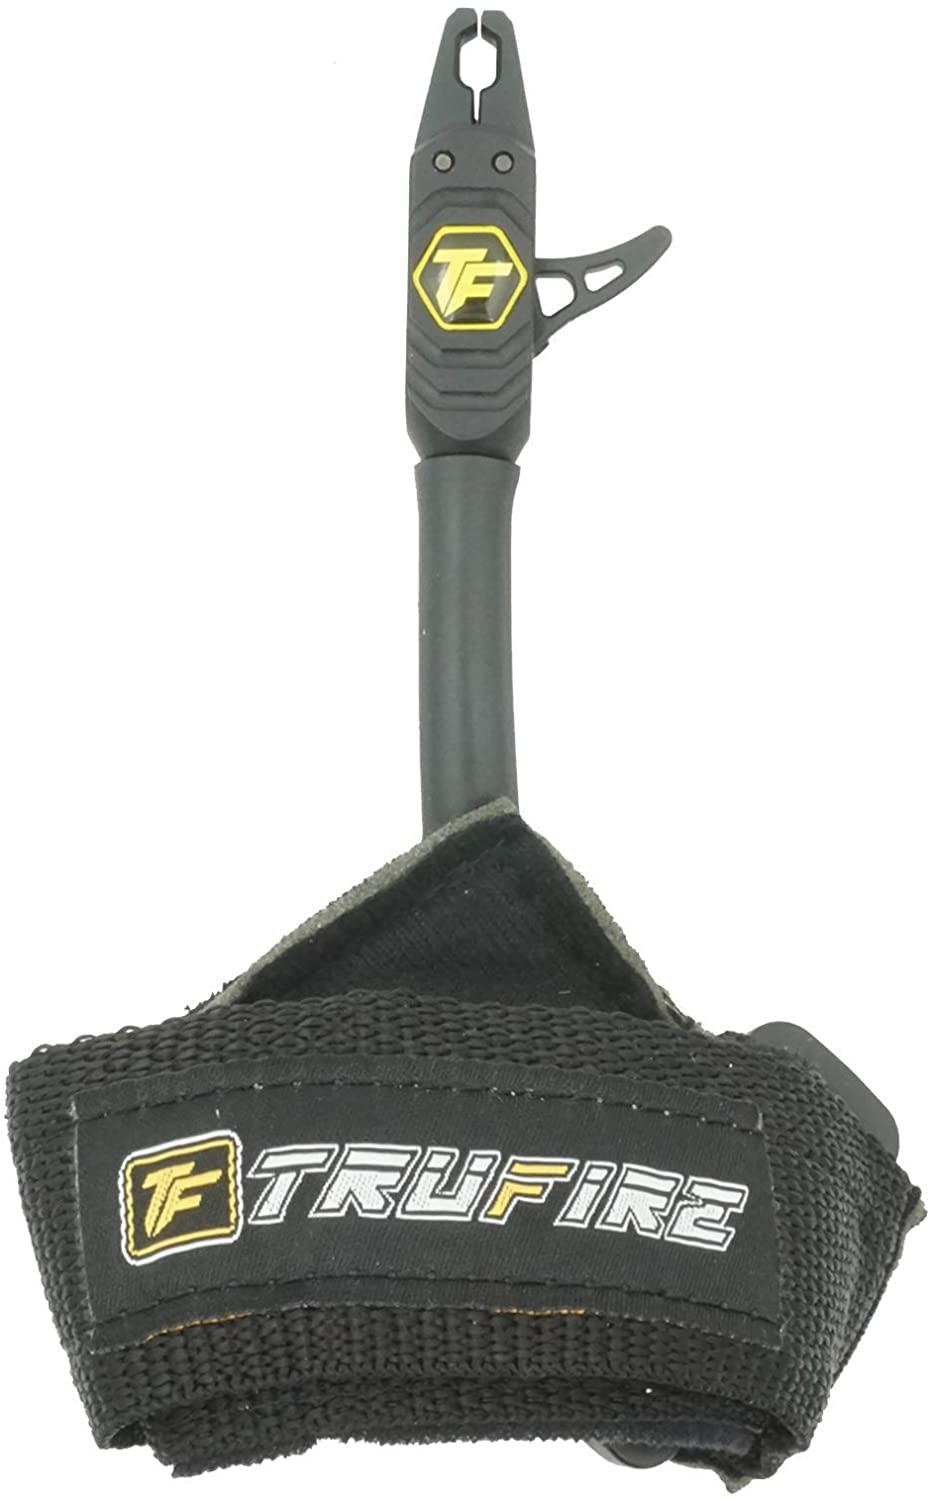 TruFire Patriot Archery Large discharge sale Compound Bow - Black Release Selling Adjustable